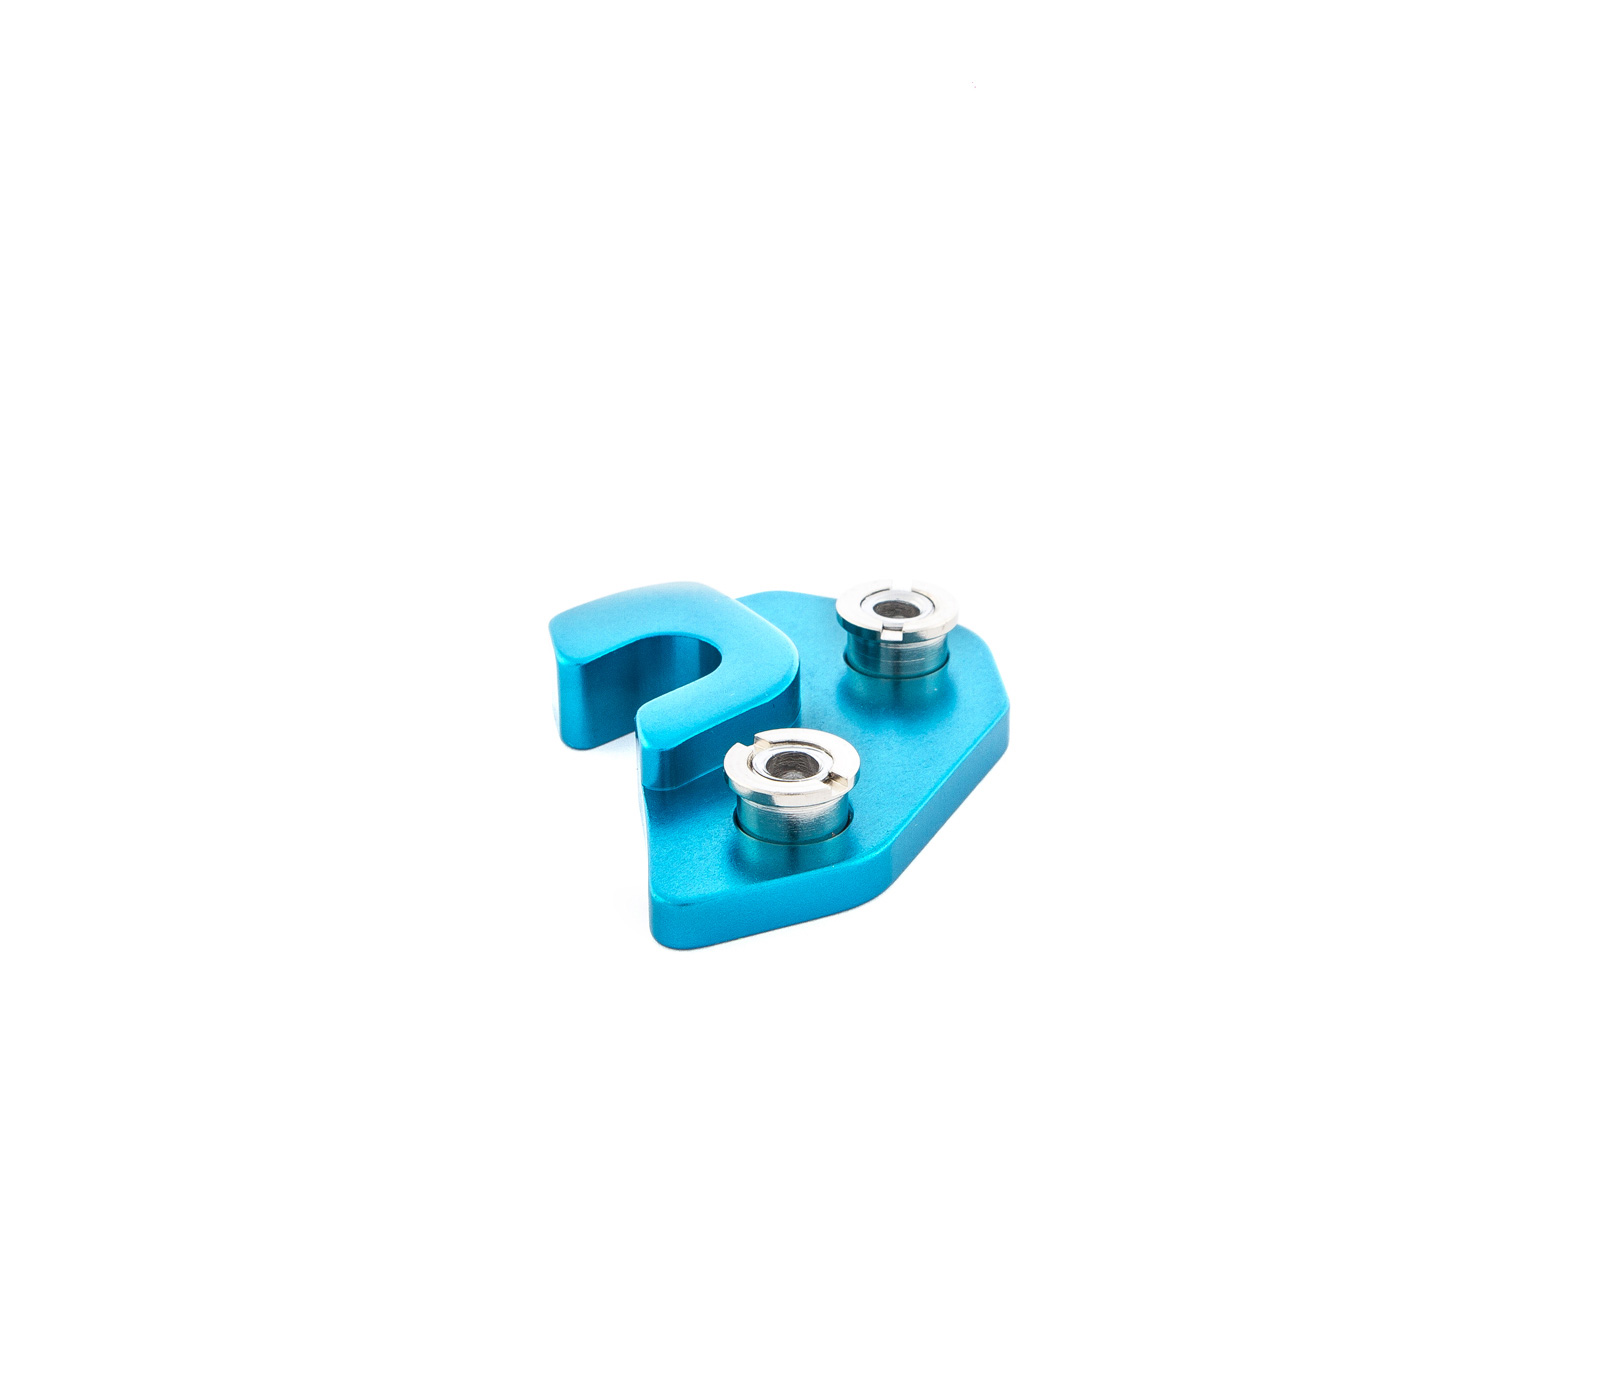 BLUE LEFT DERAILLEUR HANGER FOR RALLON MODELS